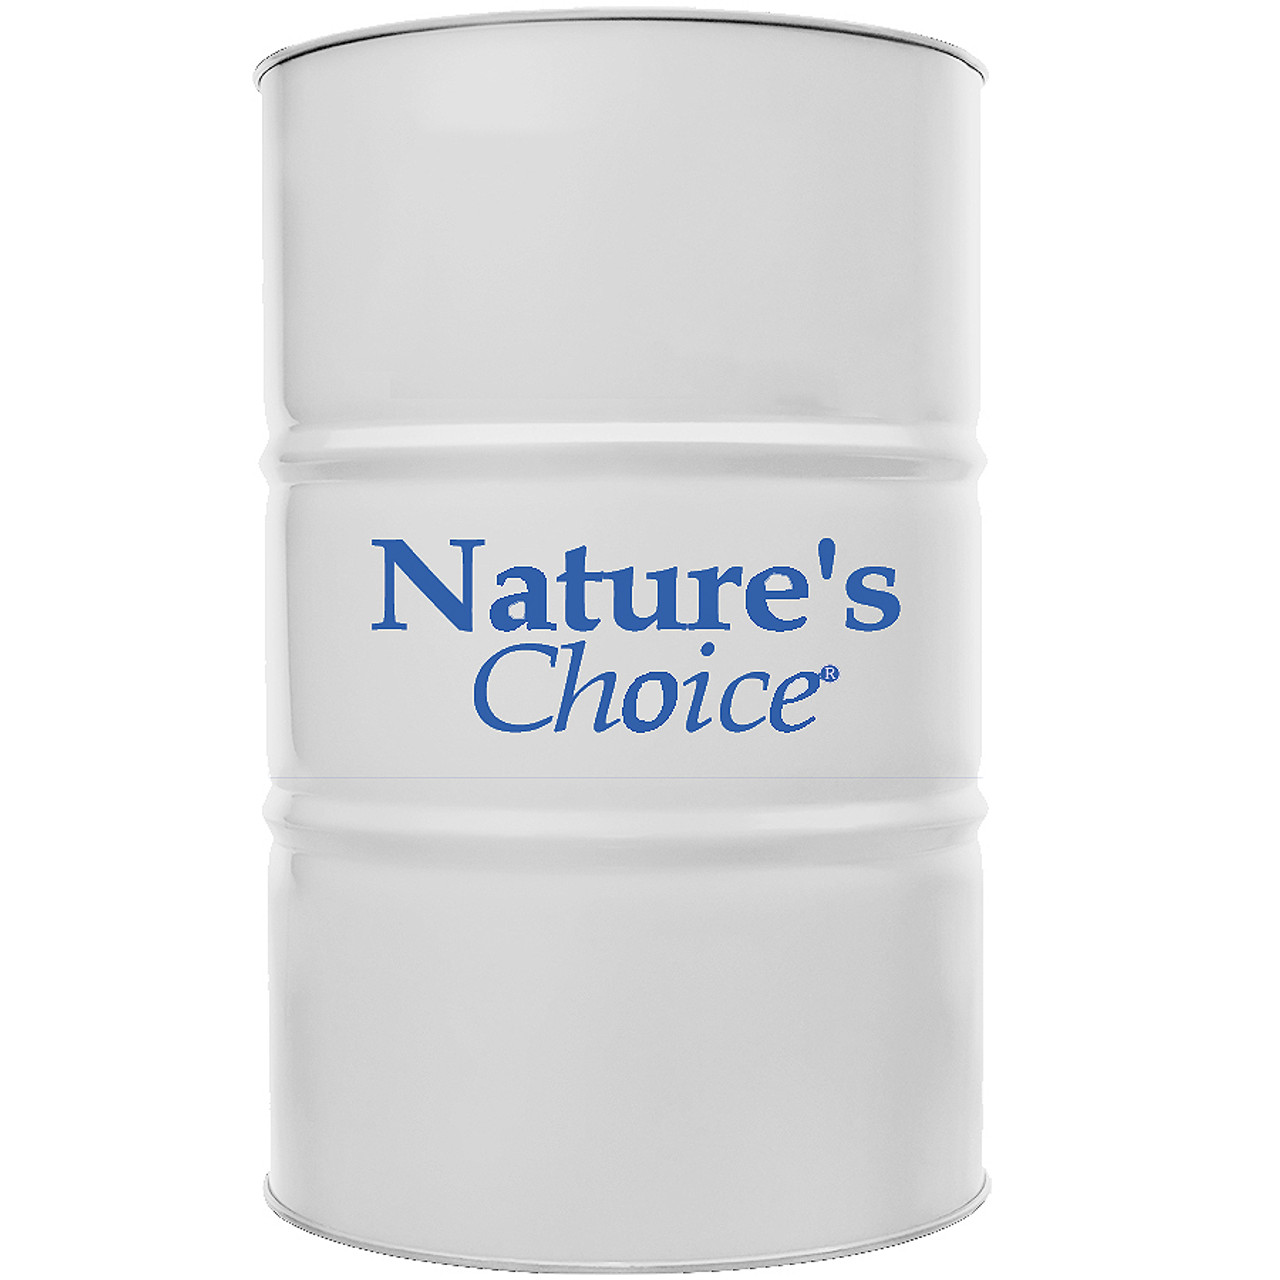 Nature's Choice Re-Refined AW 64